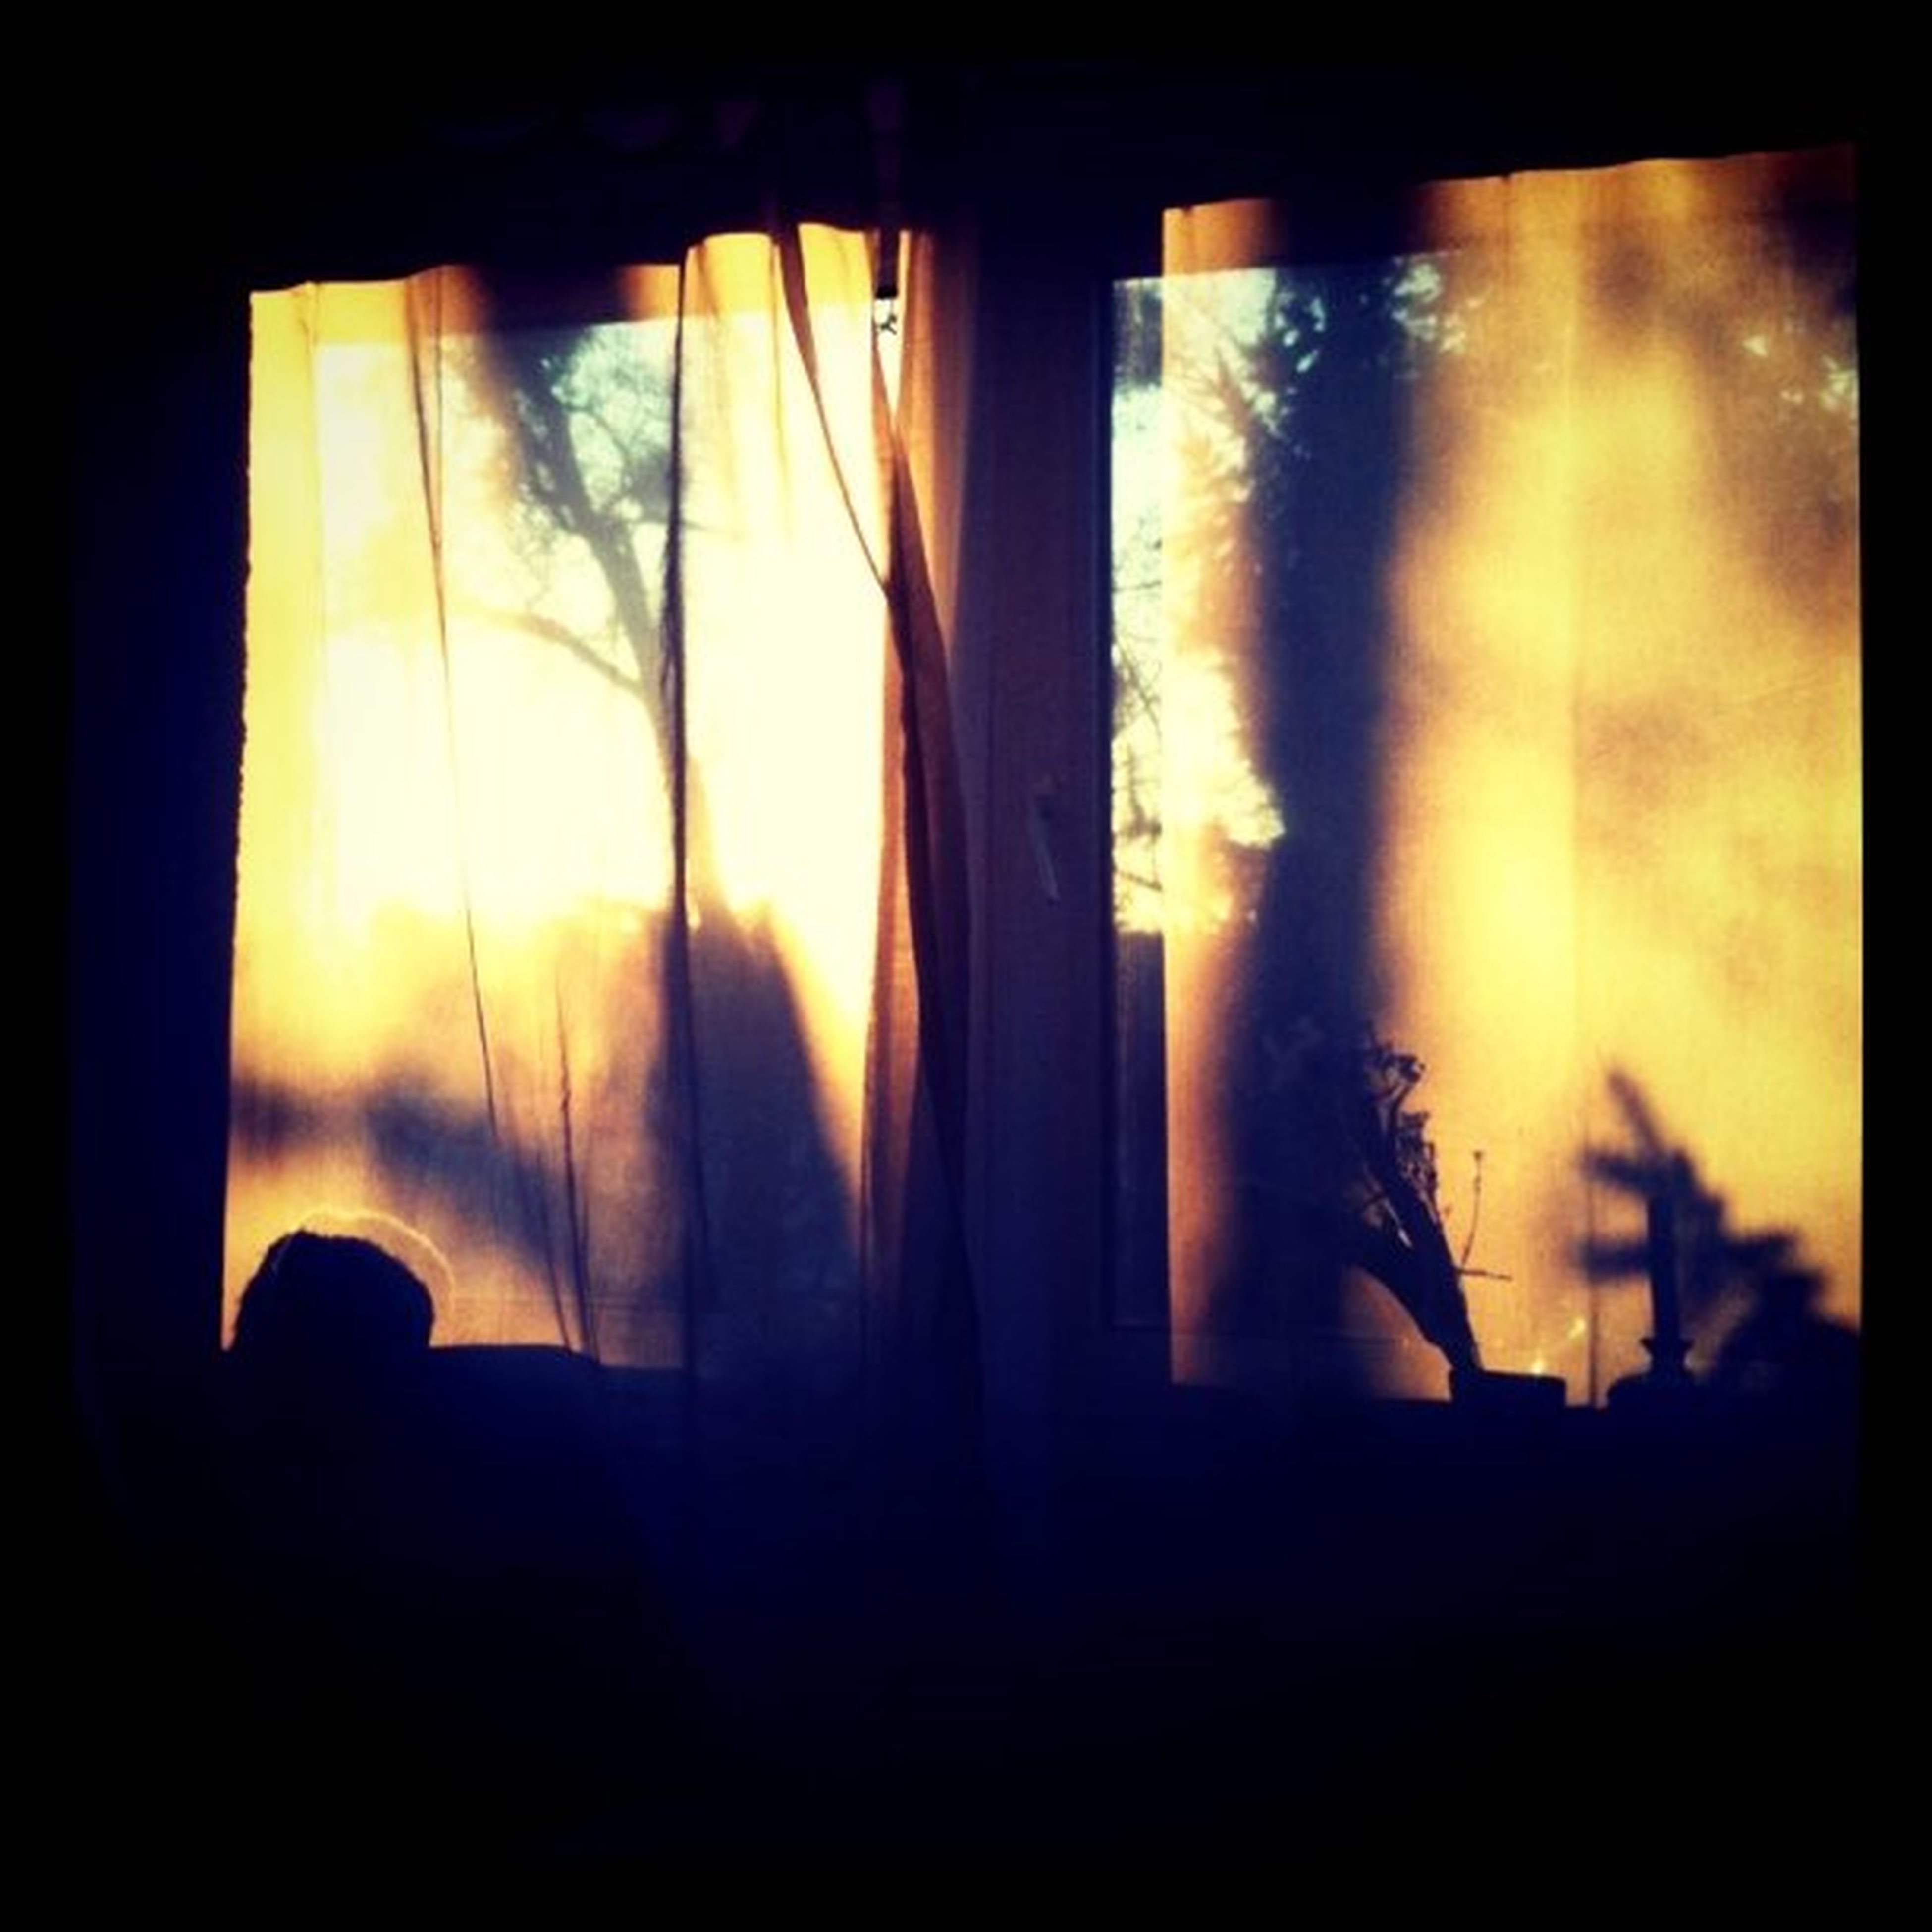 sunset, window, silhouette, indoors, glass - material, transparent, orange color, sun, dark, curtain, looking through window, sky, sunlight, nature, glass, reflection, beauty in nature, close-up, home interior, outline